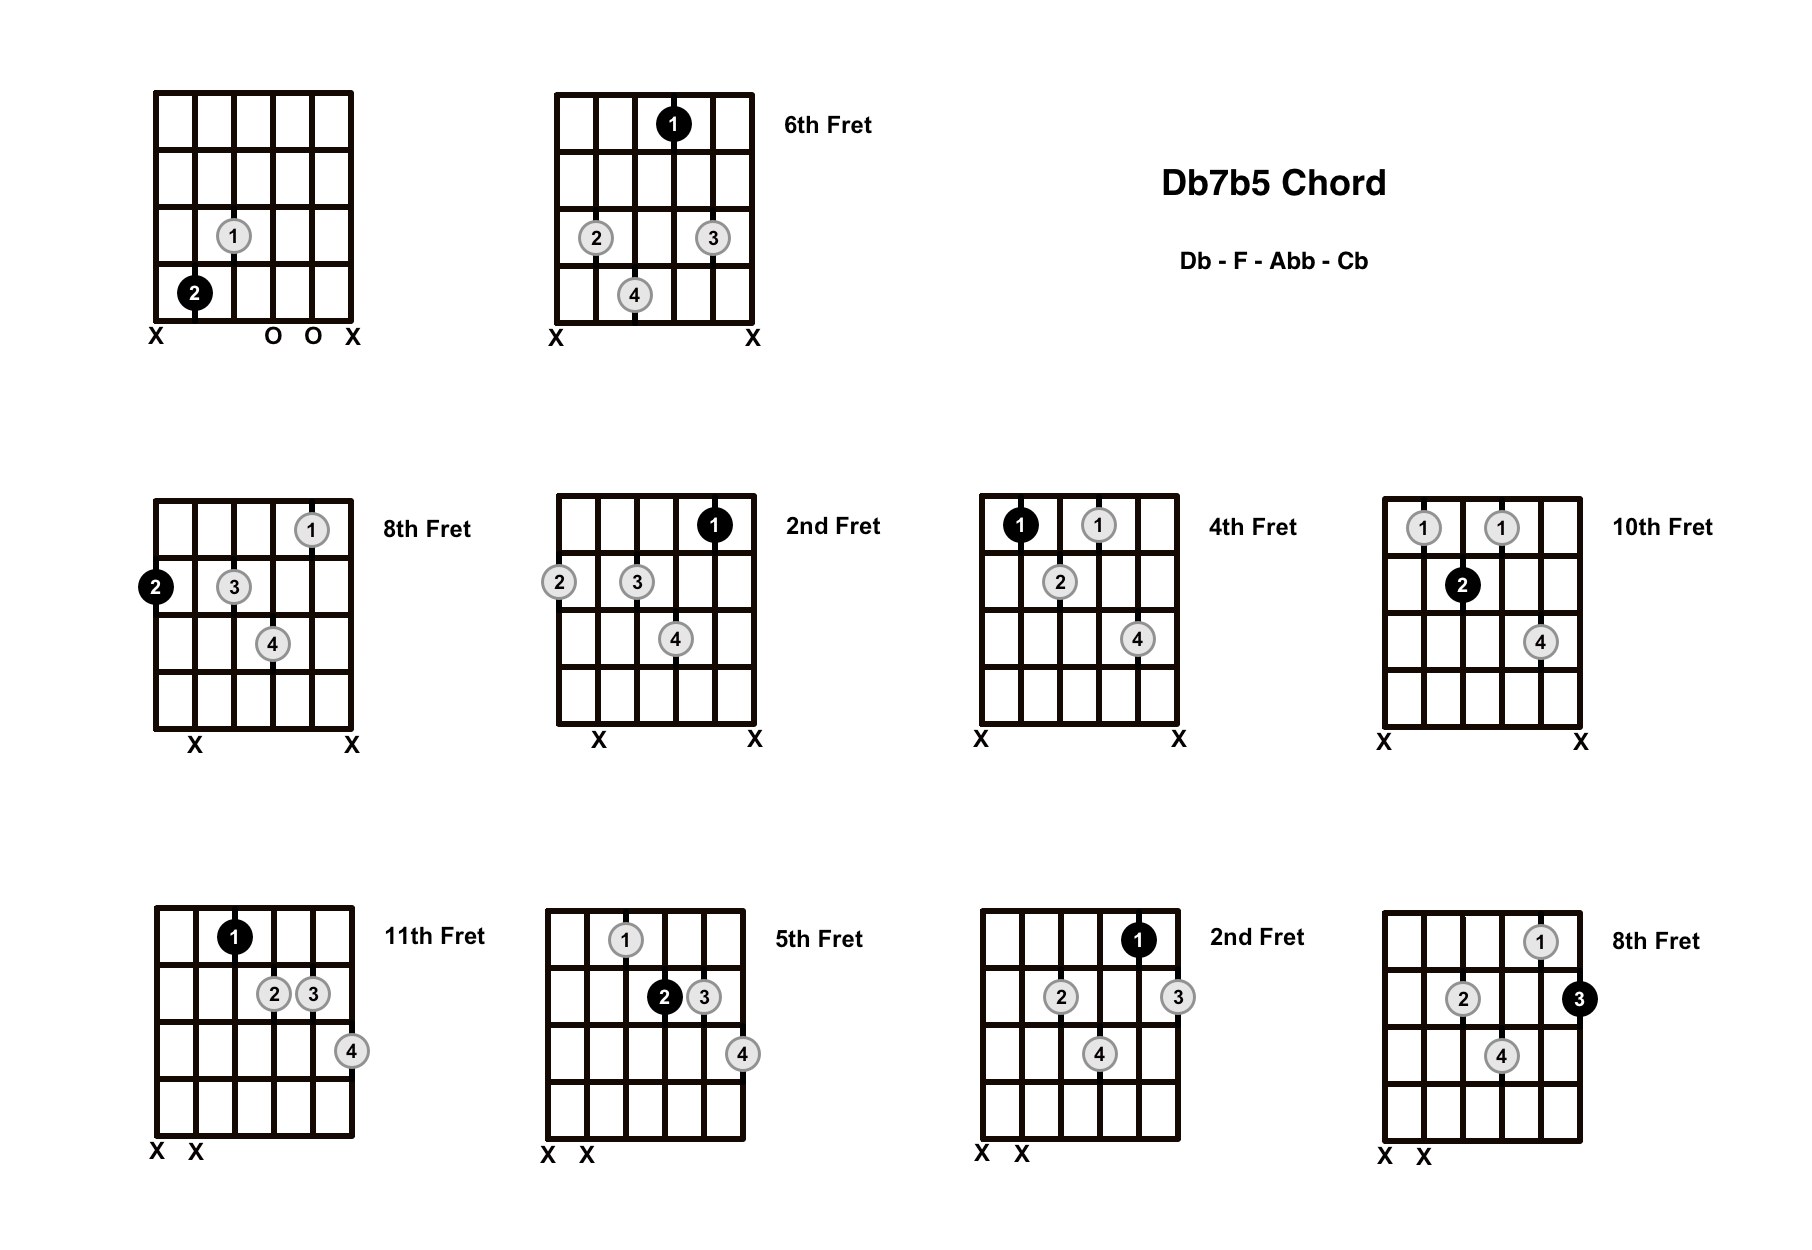 Db7b5 Chord On The Guitar (D Flat Dominant 7 Flat 5) – Diagrams, Finger Positions and Theory